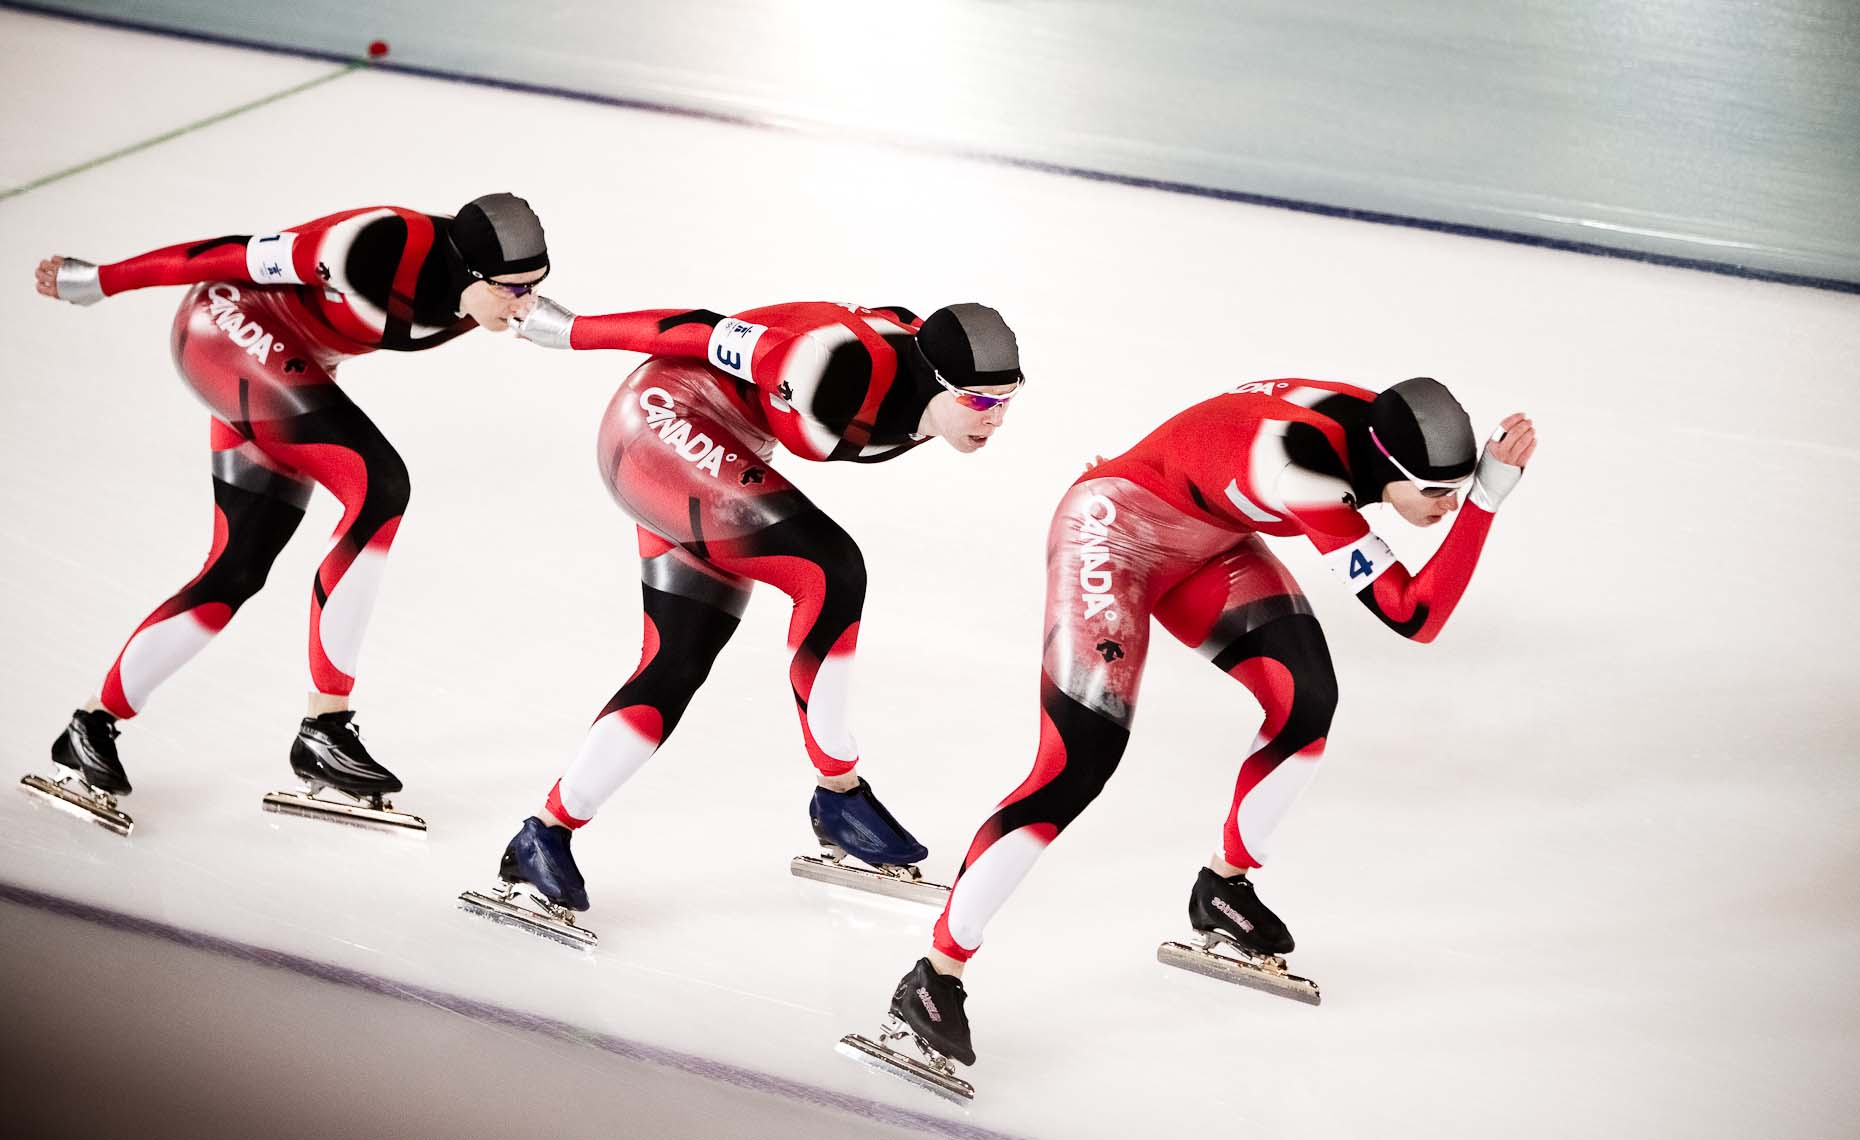 Speed skating team in vancouver during the 2010 winter olympics